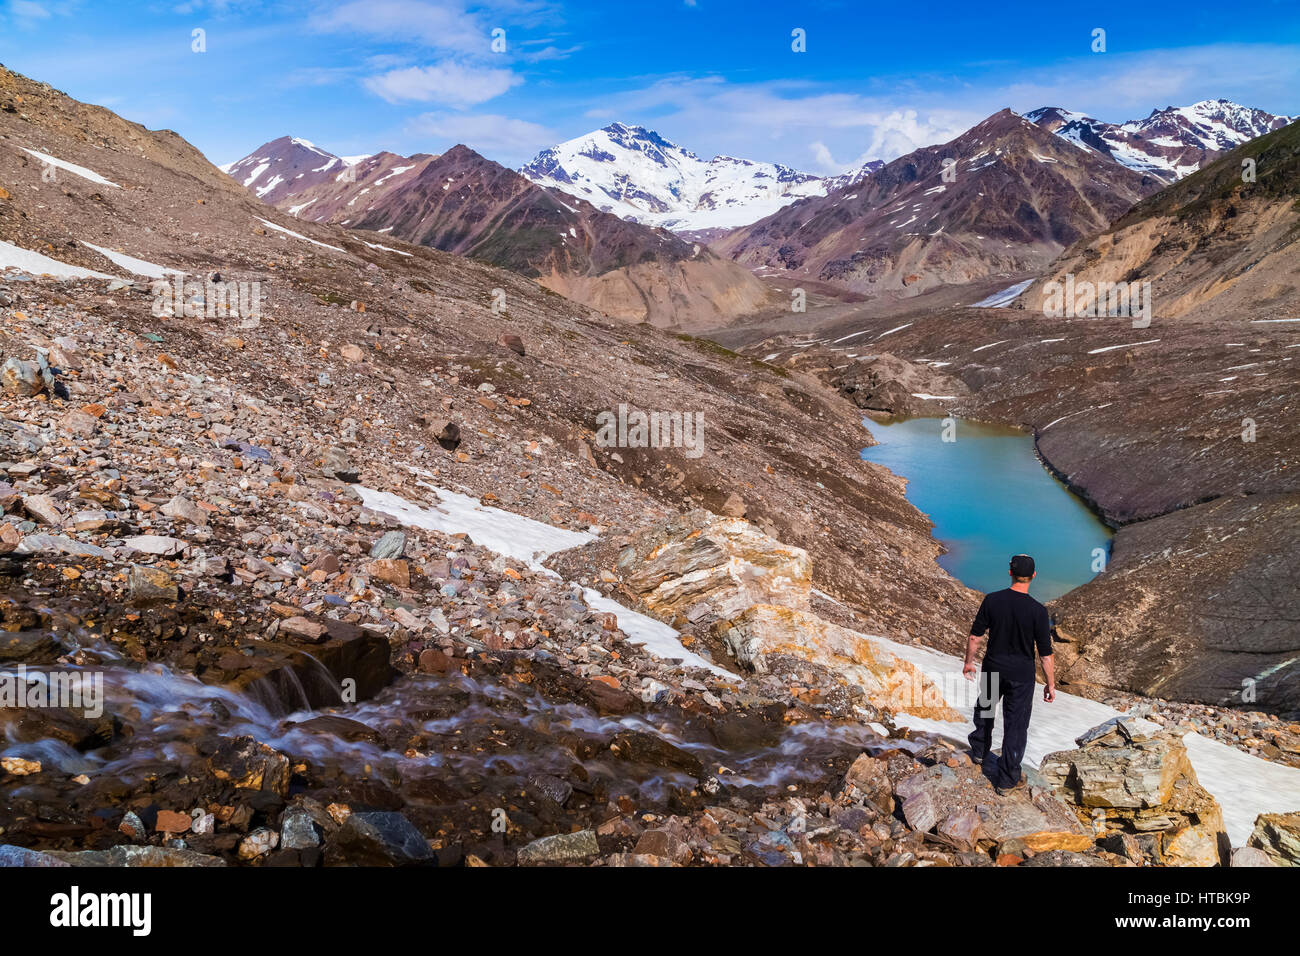 A hiker gazes over the 'intersection' of three branches of Castner Glacier at Mount Silvertip rising in - Stock Image